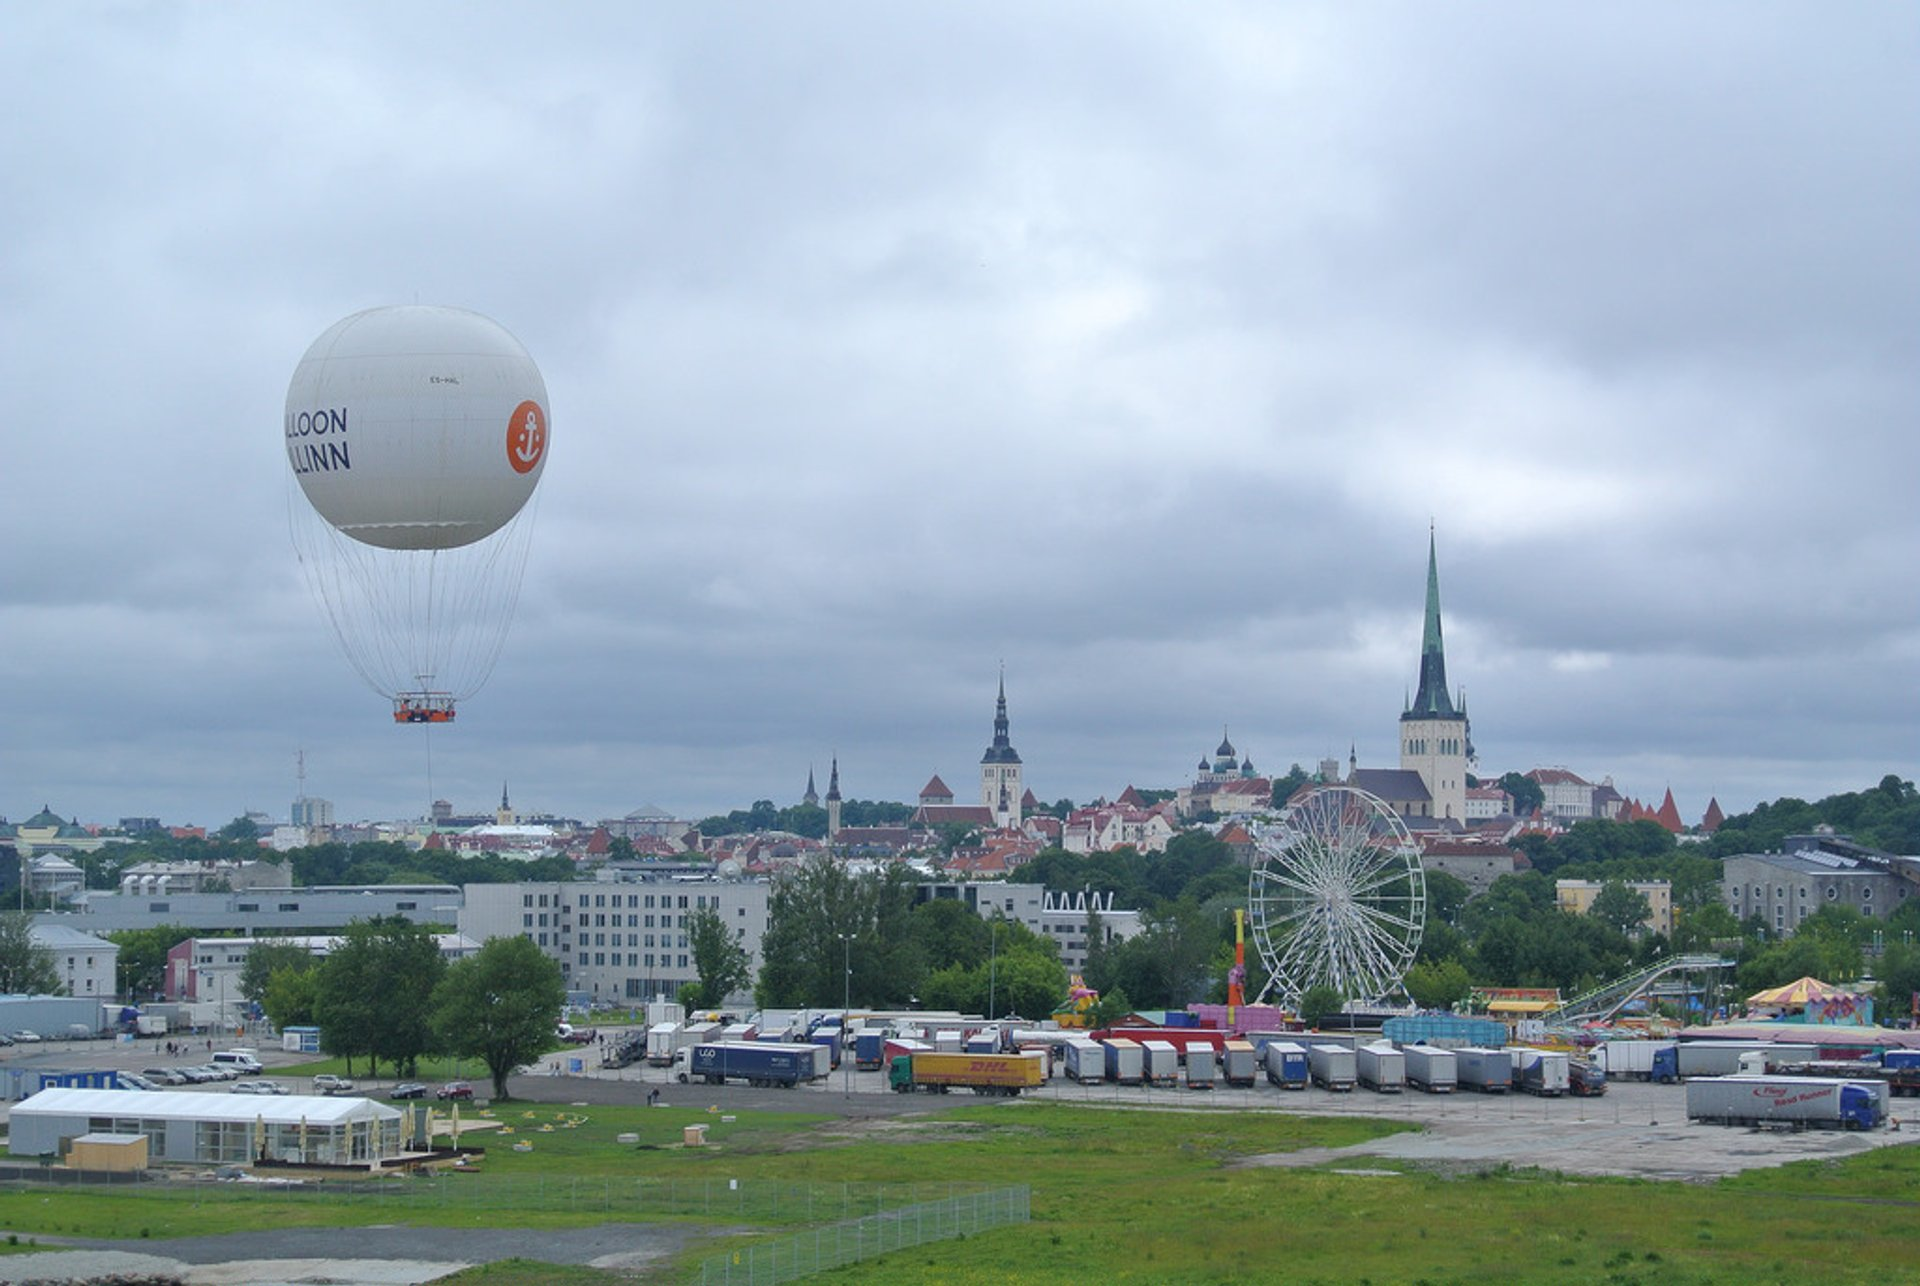 Best time to see Balloon Tallinn in Estonia 2019